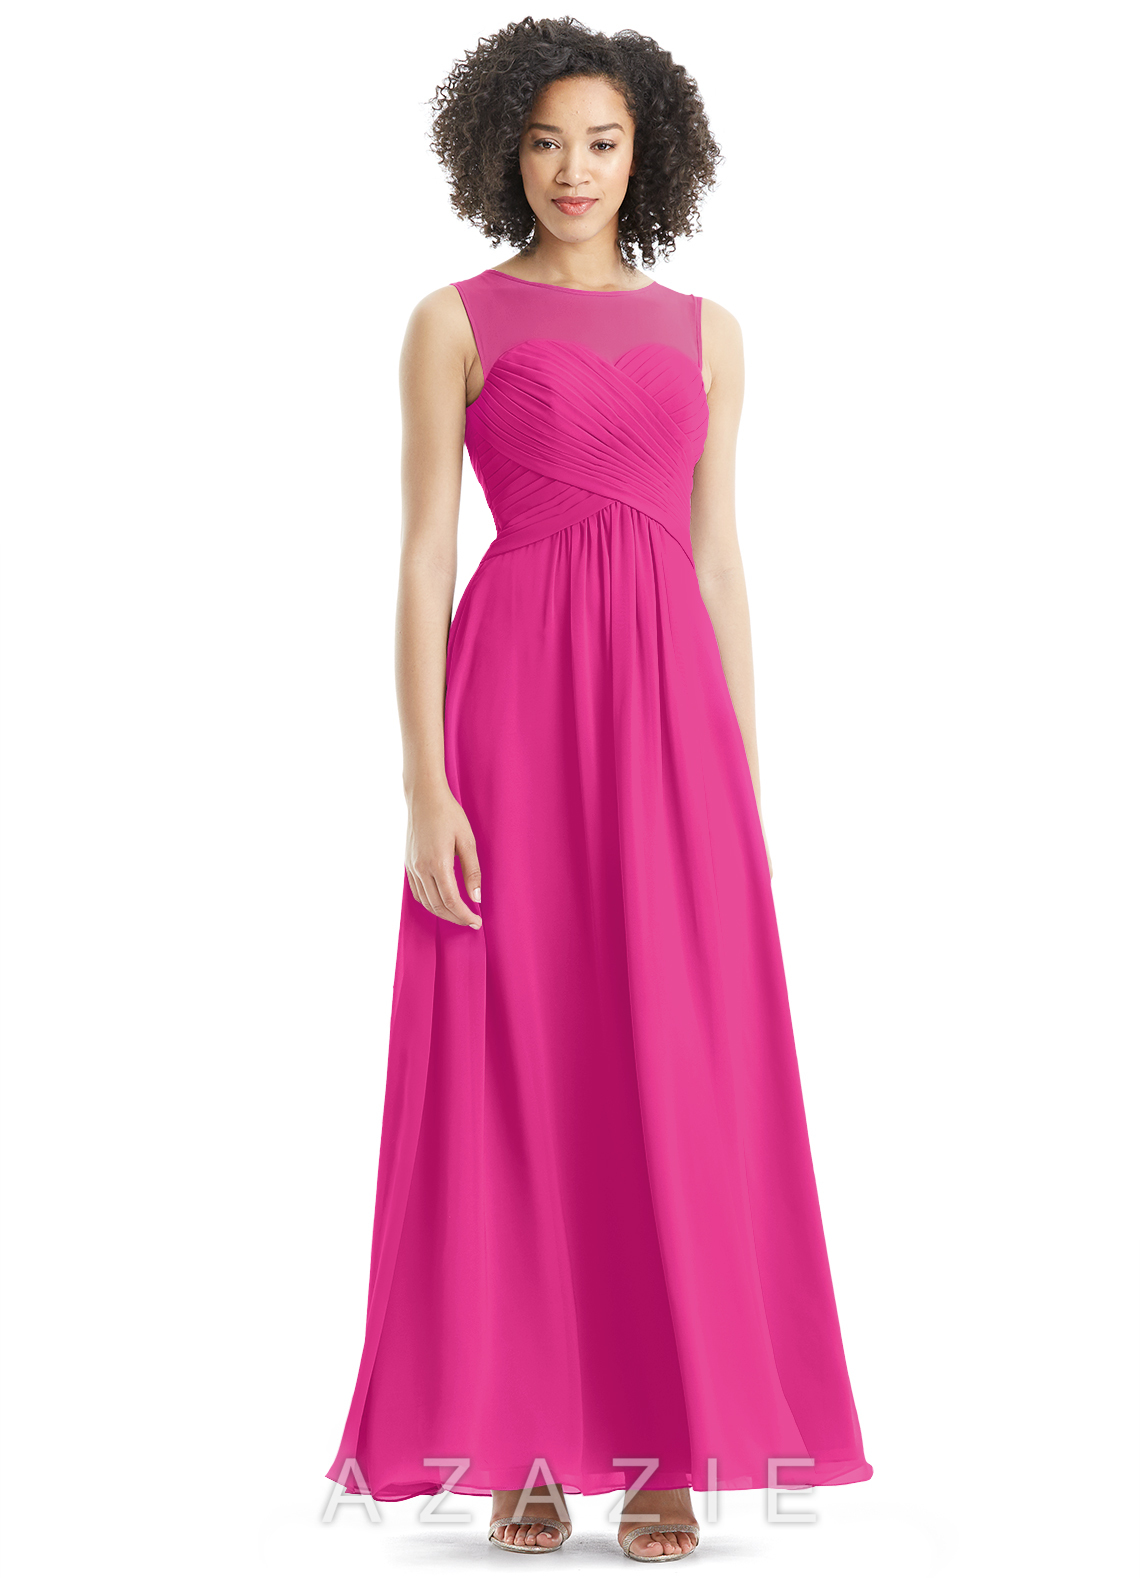 Fuchsia Color Bridesmaid Dresses | www.pixshark.com ...